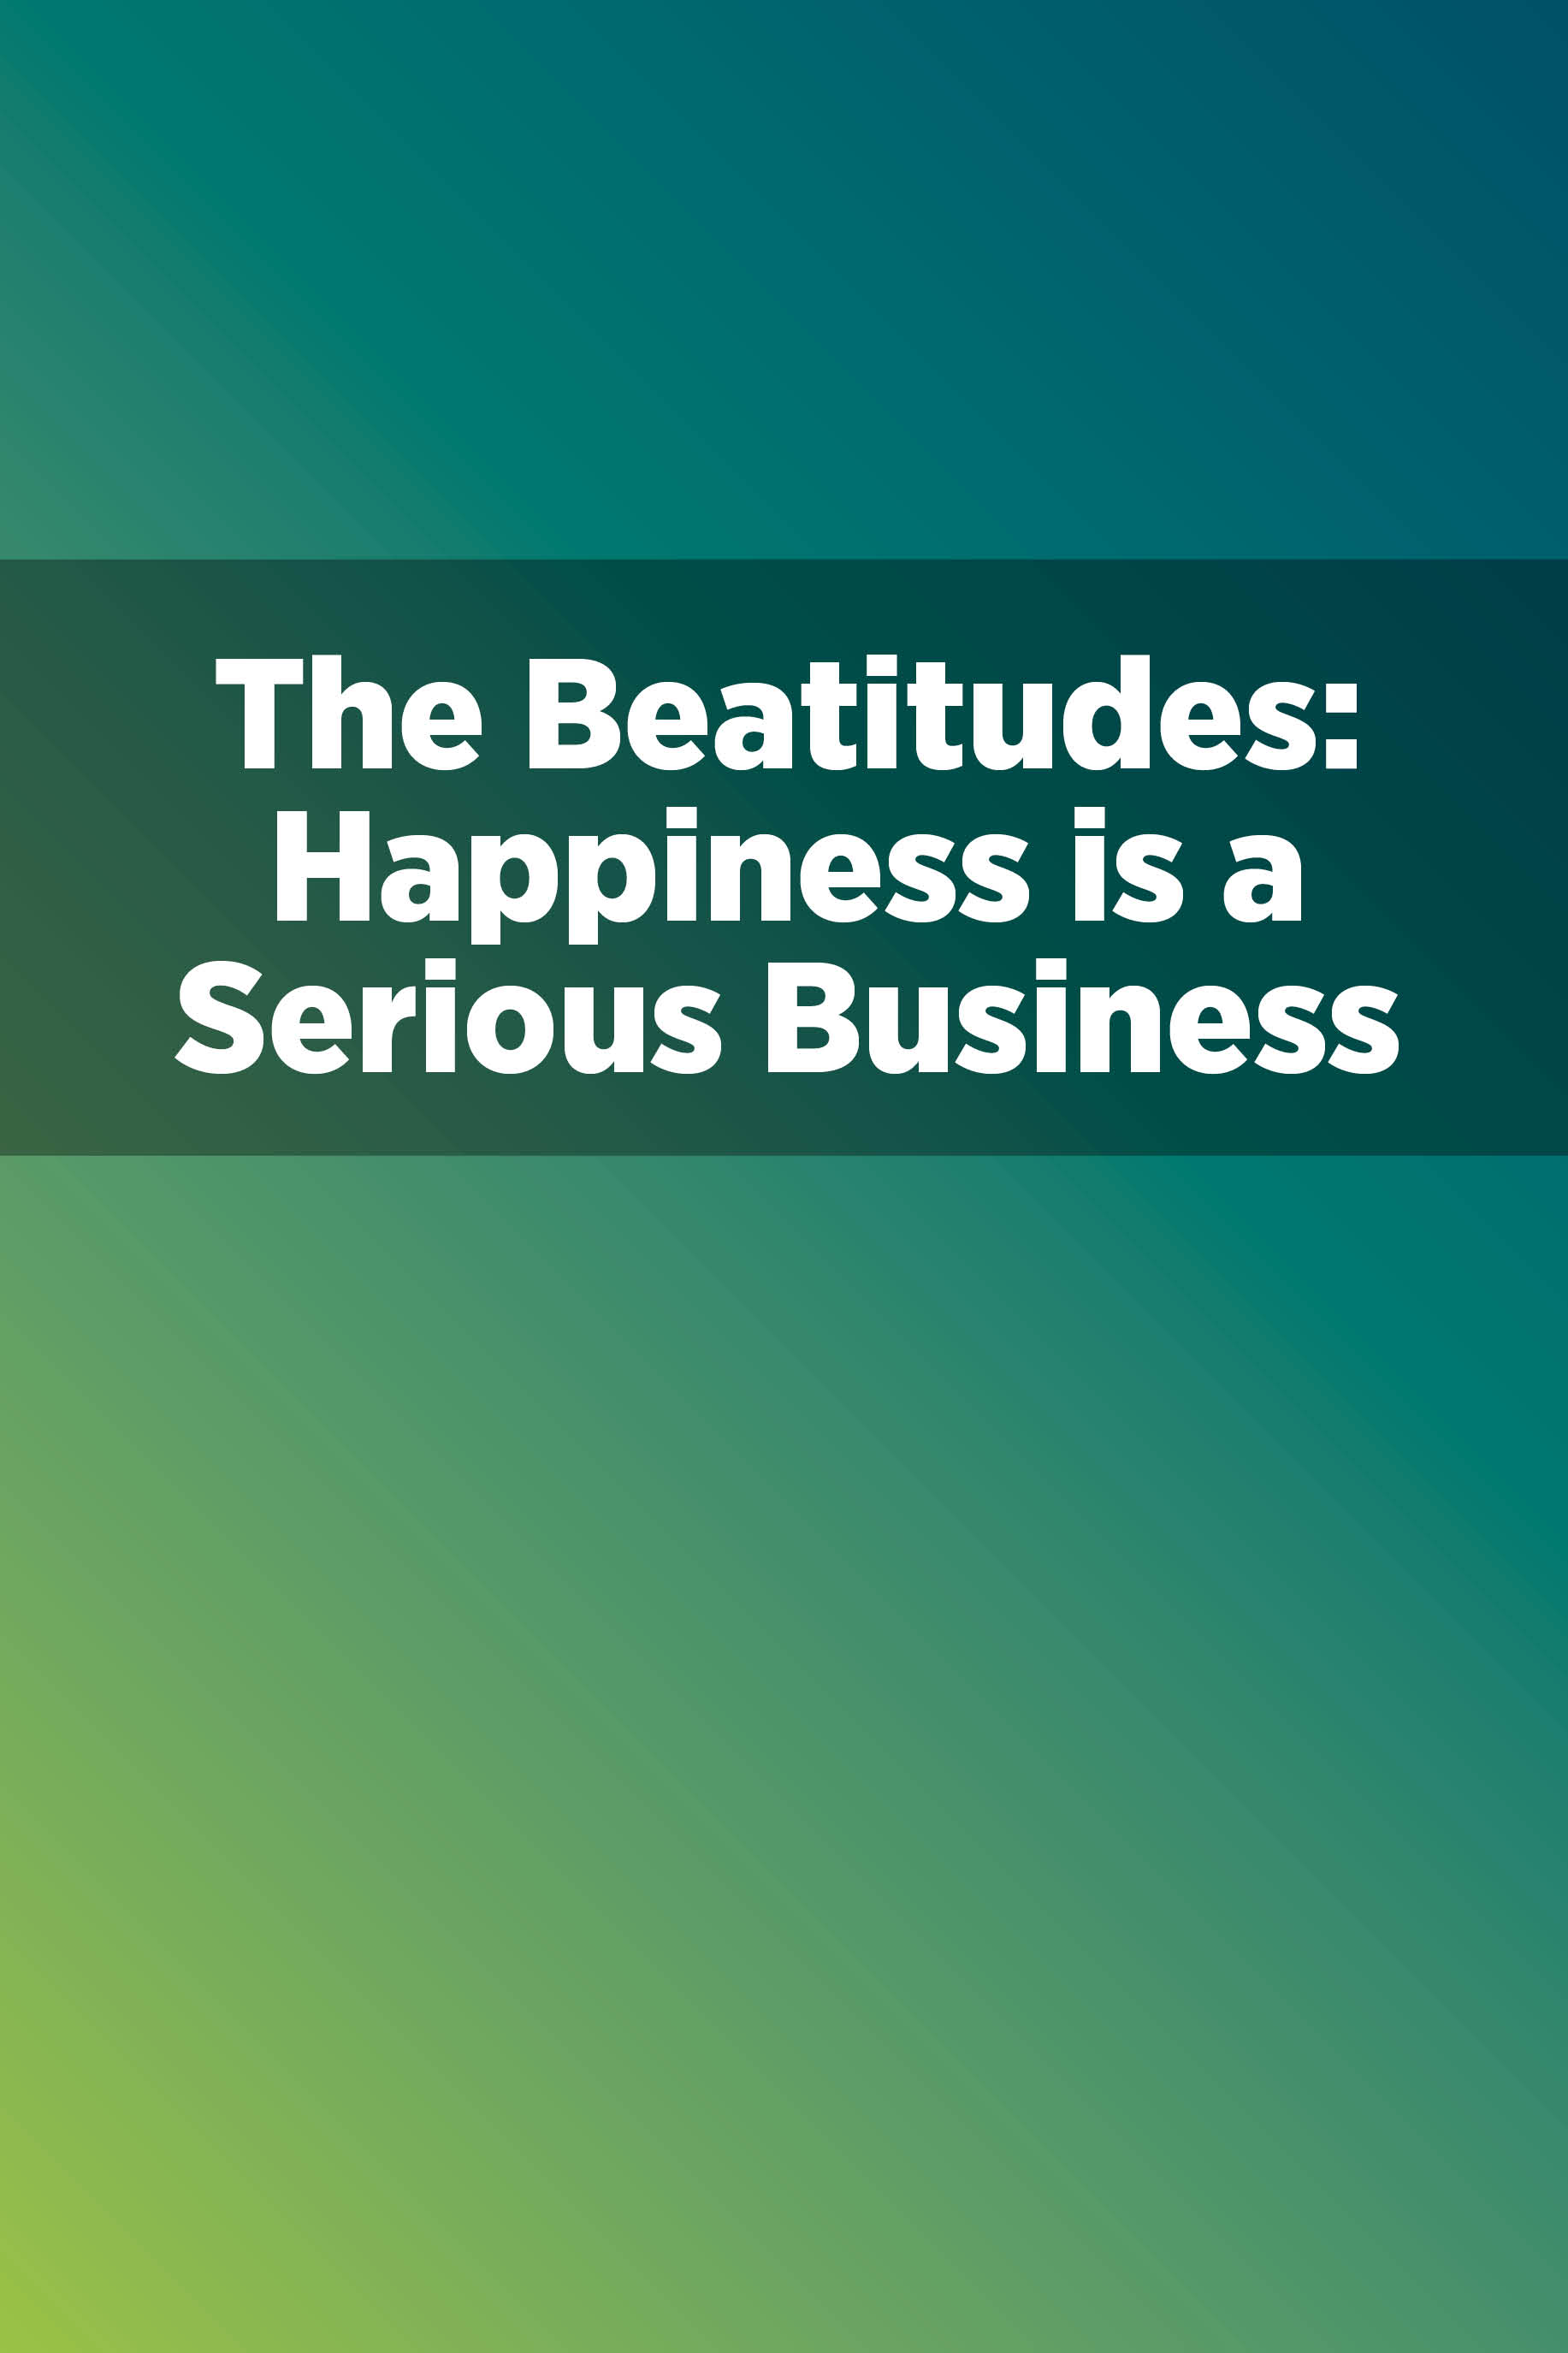 The Beatitudes: Happiness Is a Serious Business